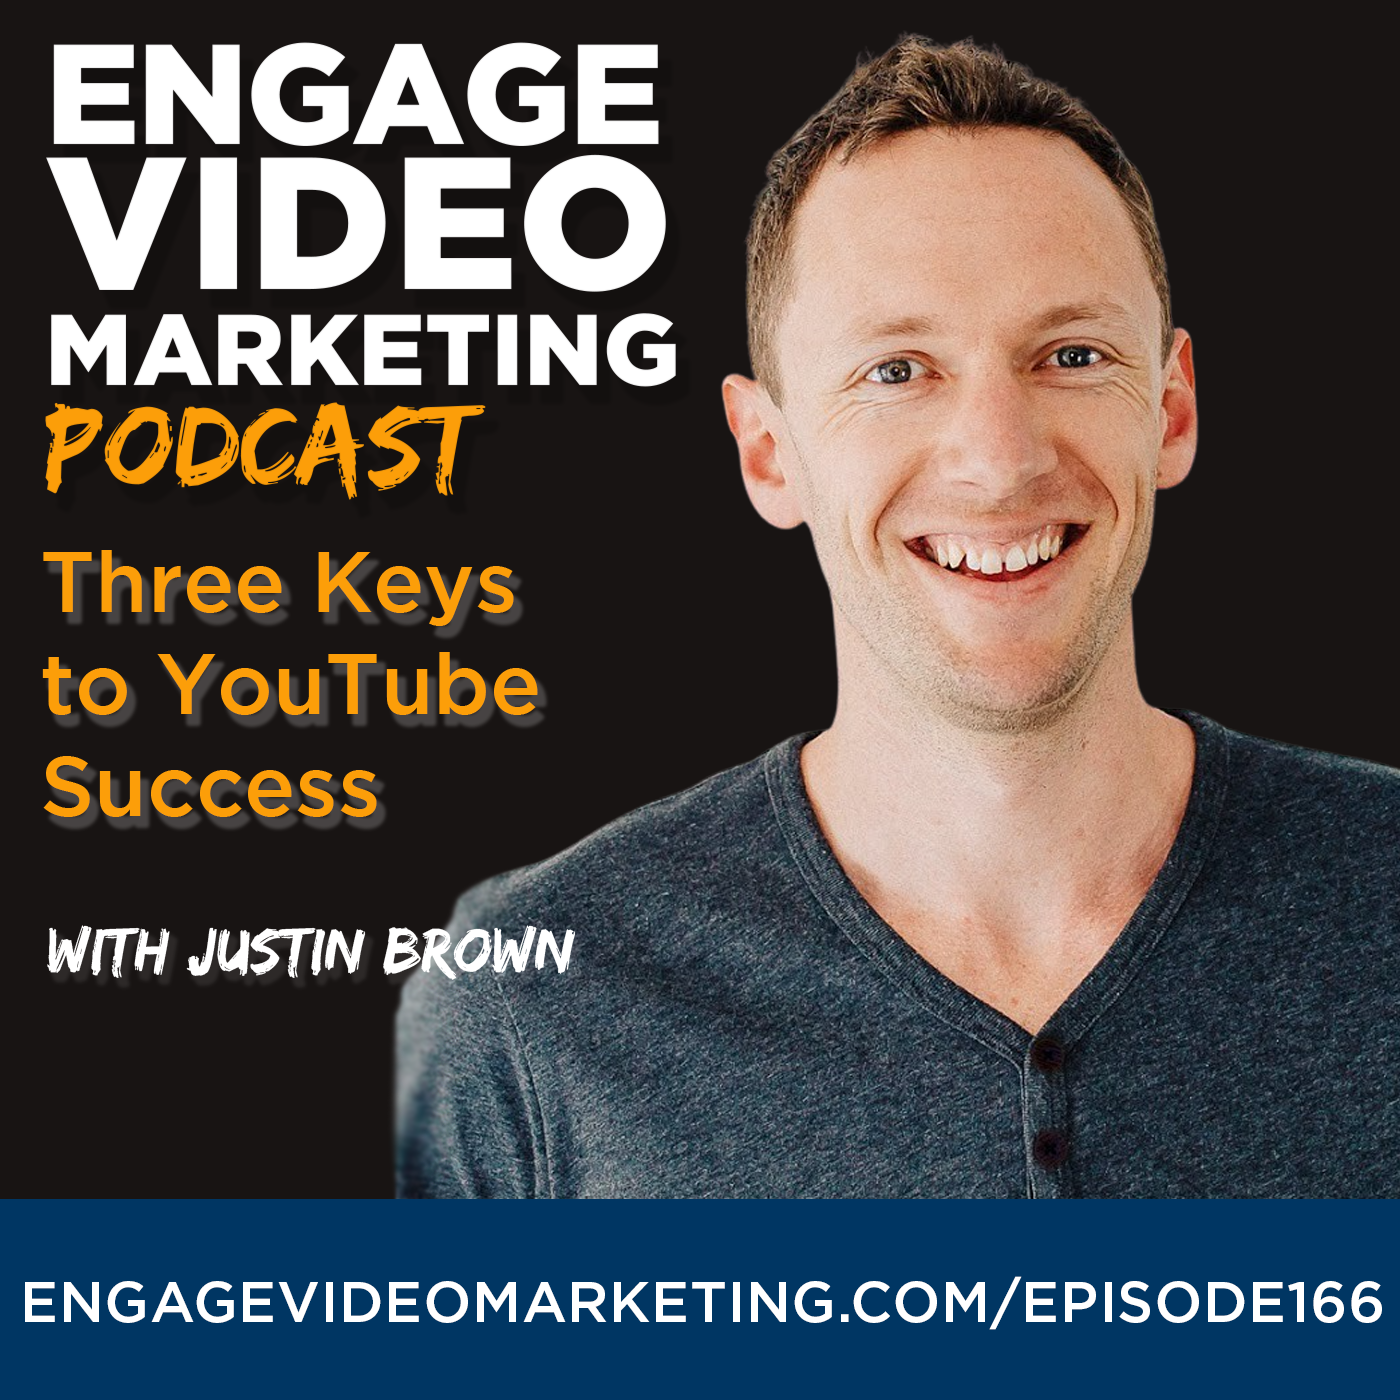 Three Keys to YouTube Success with Justin Brown